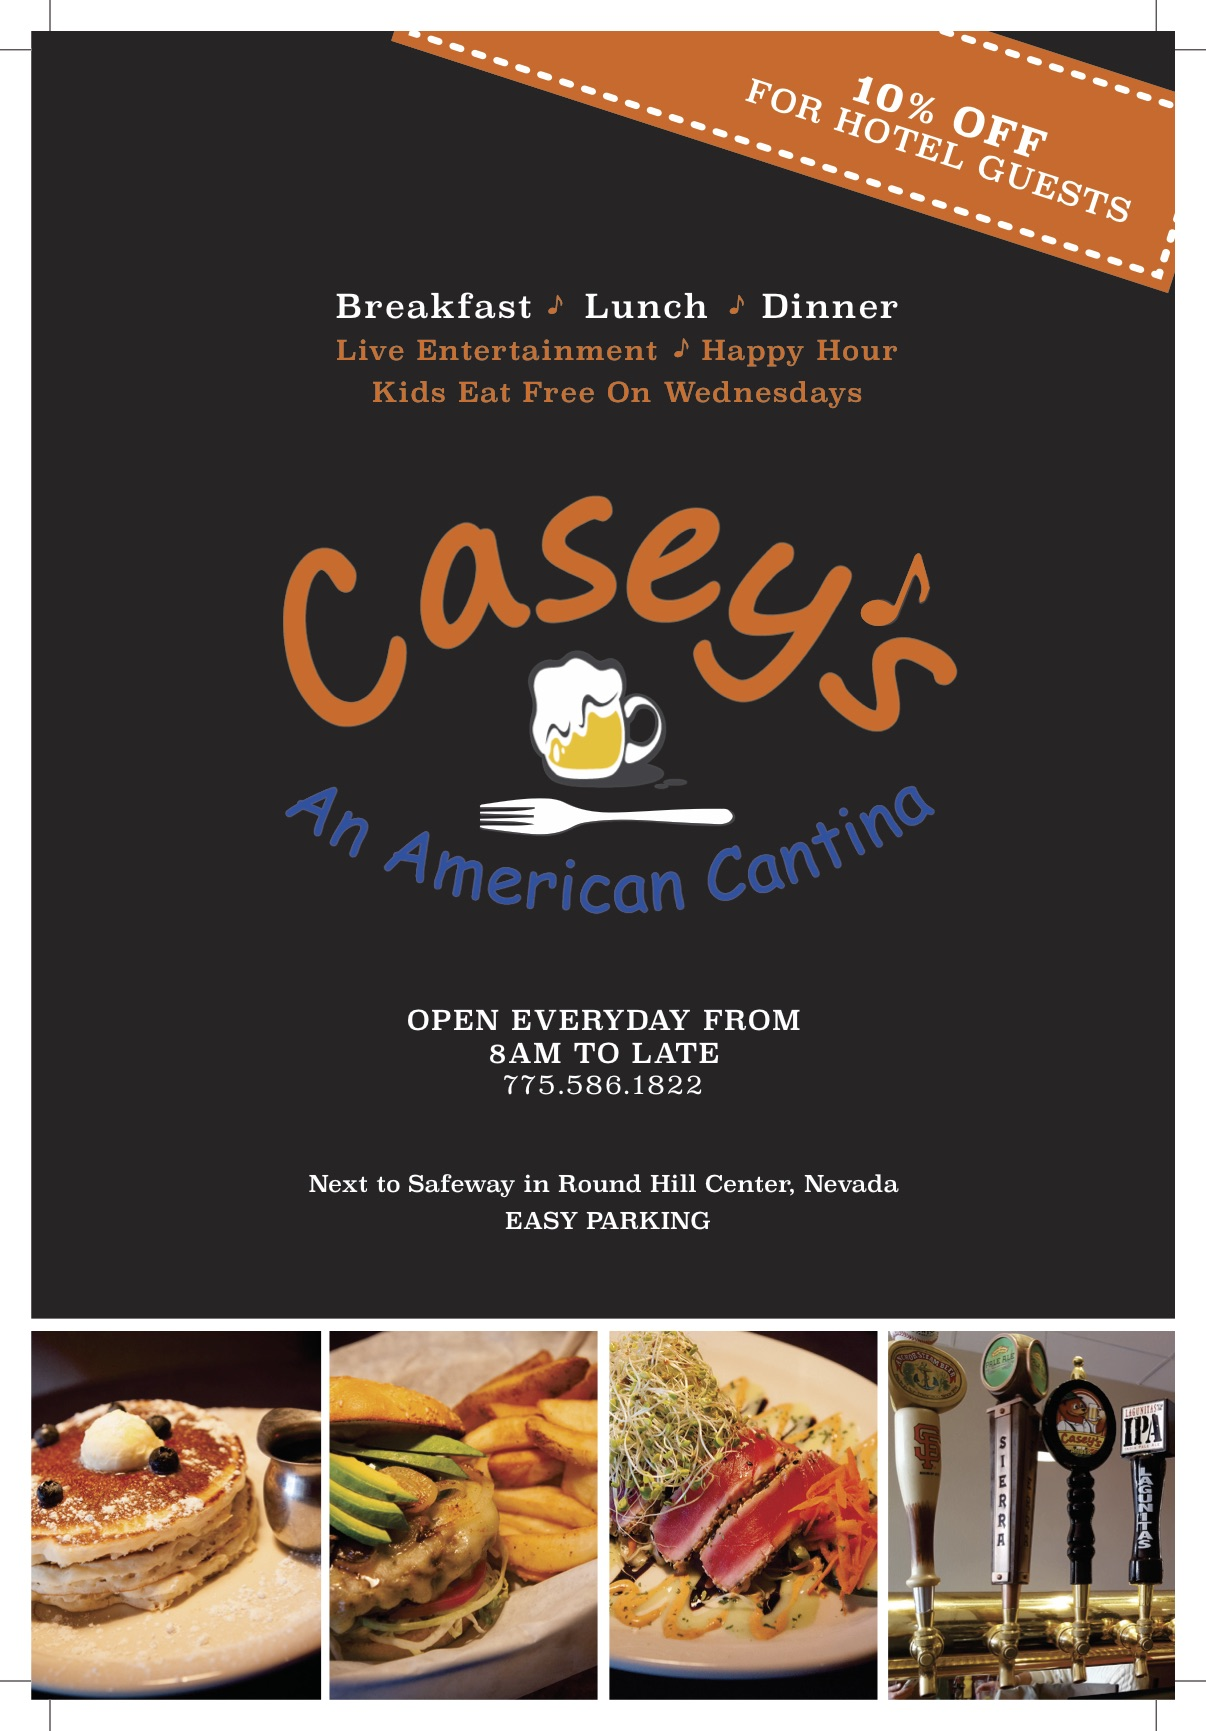 Casey S American Cantina Tahoe Inn Room Guest Magazine Ad Design Tahoe Production House